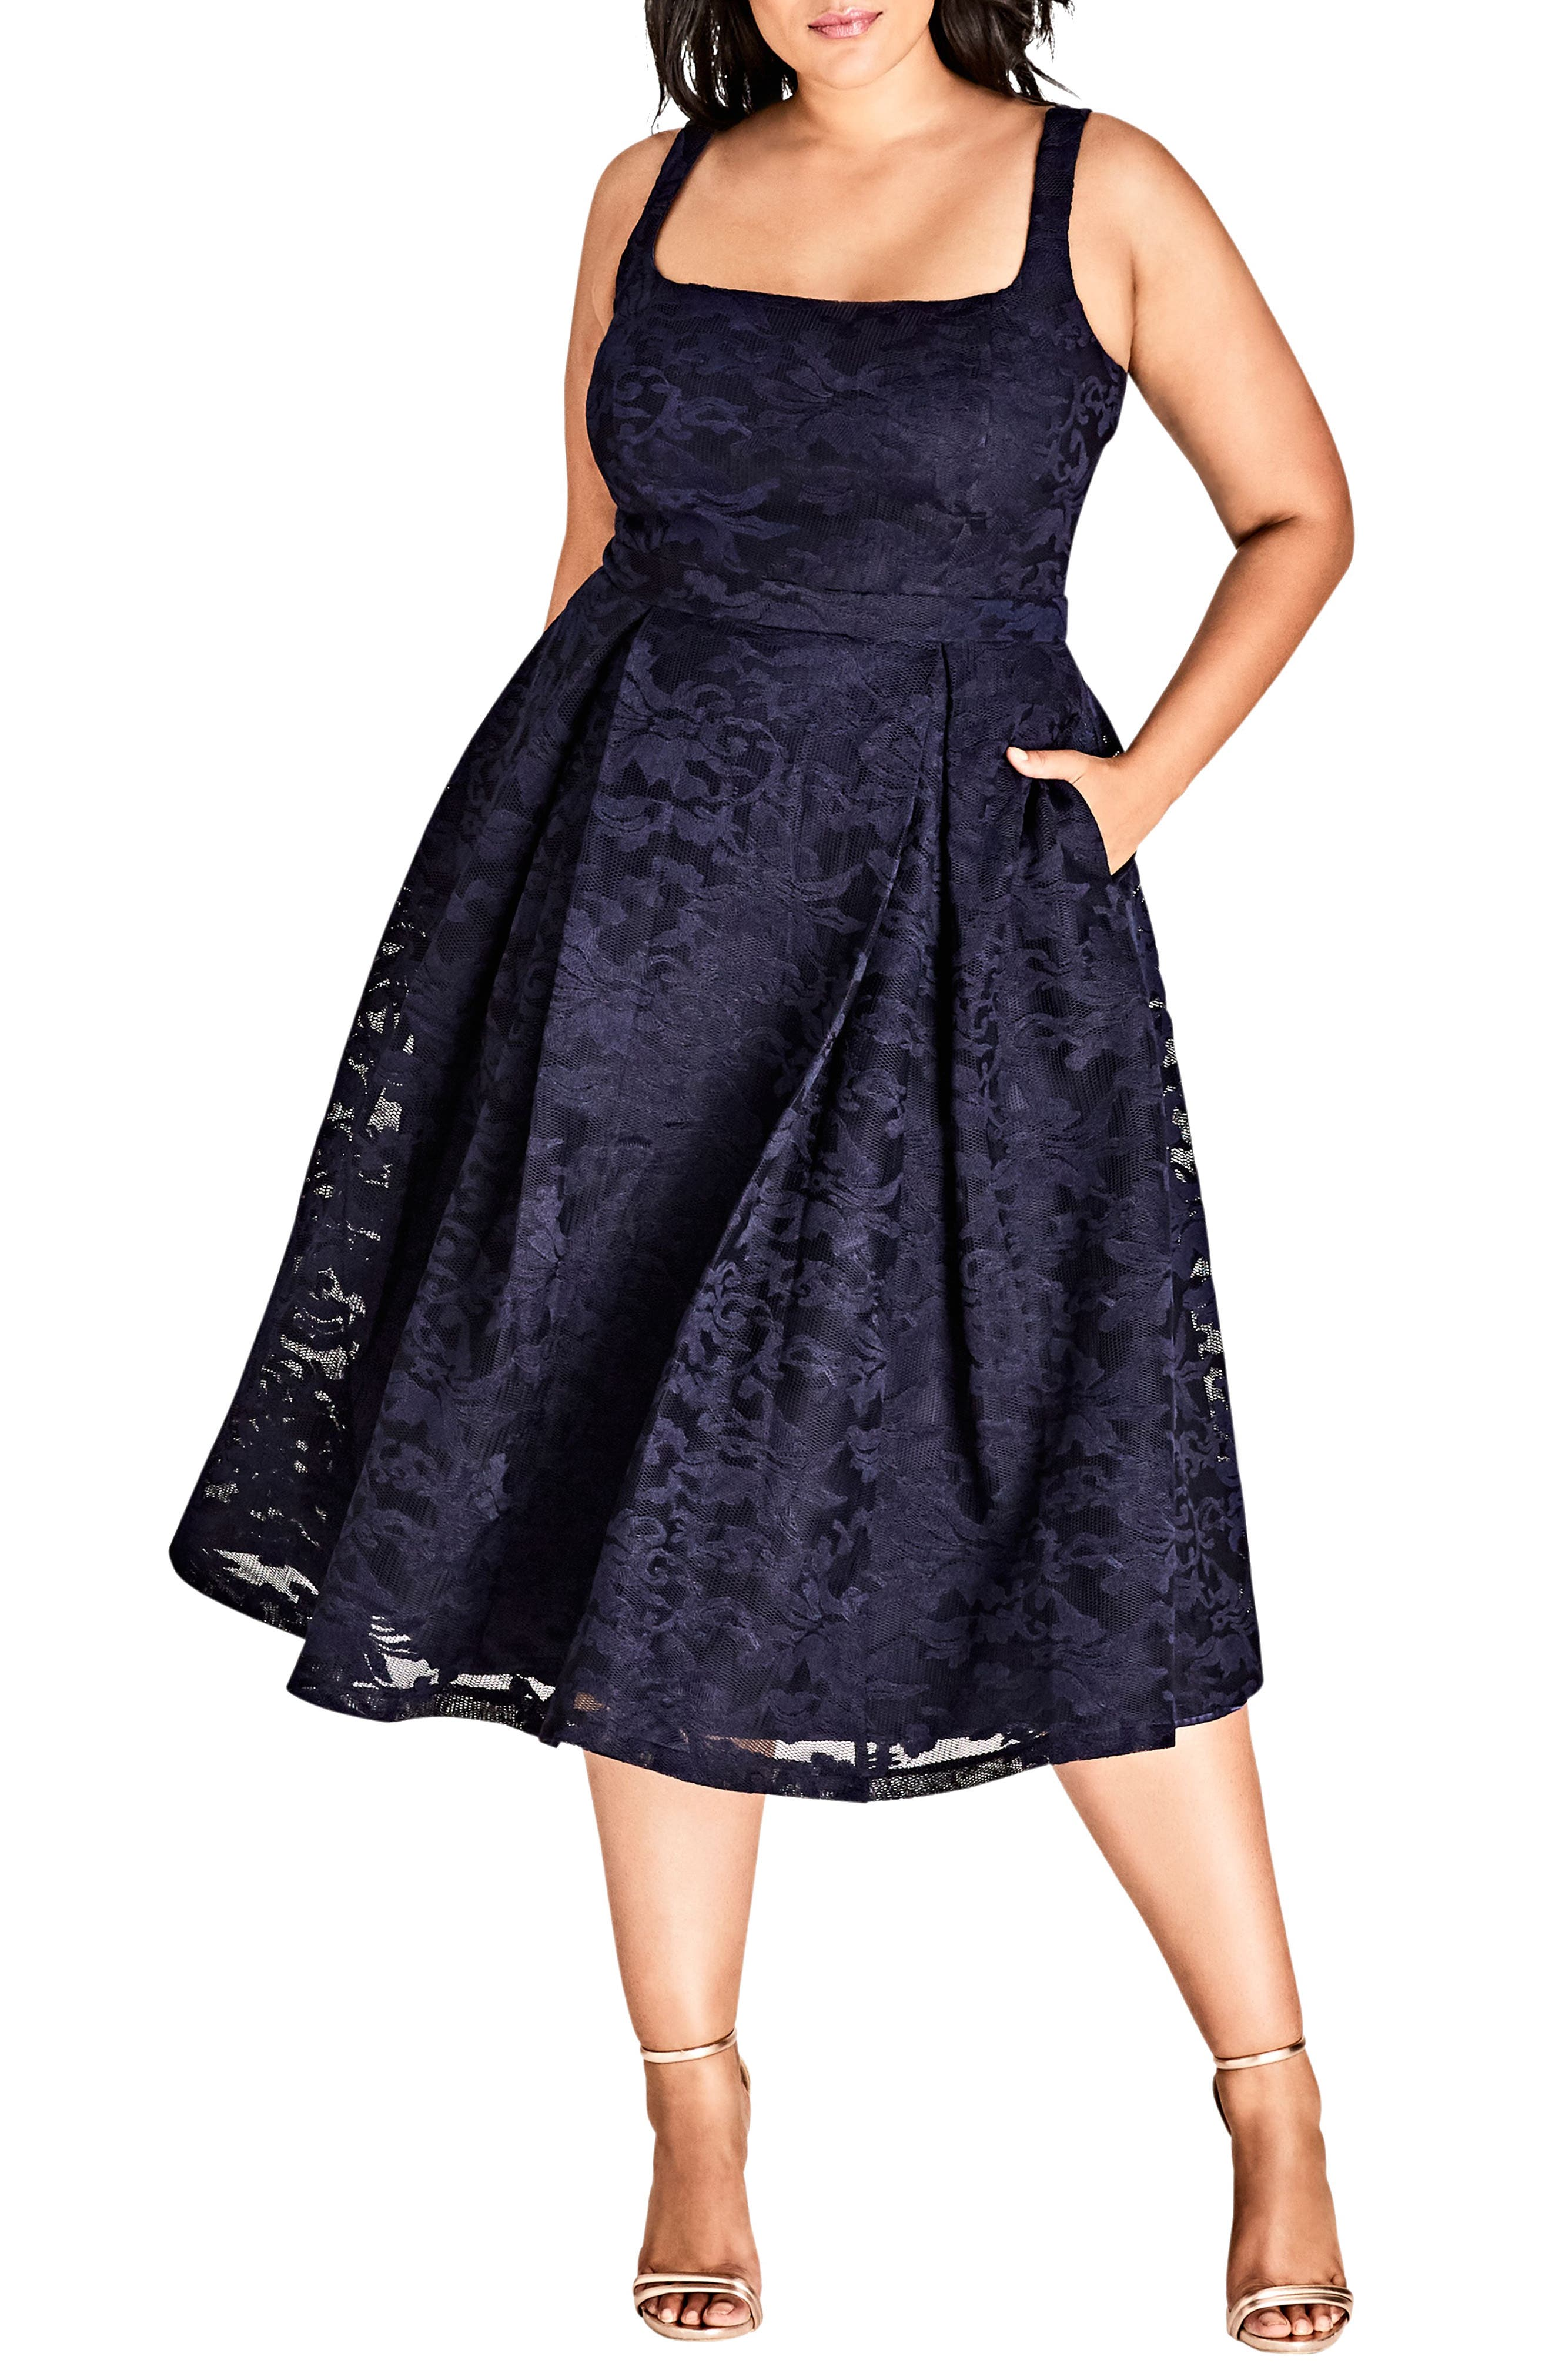 CITY CHIC Jackie O Lace Fit & Flare Dress, Main, color, NAVY